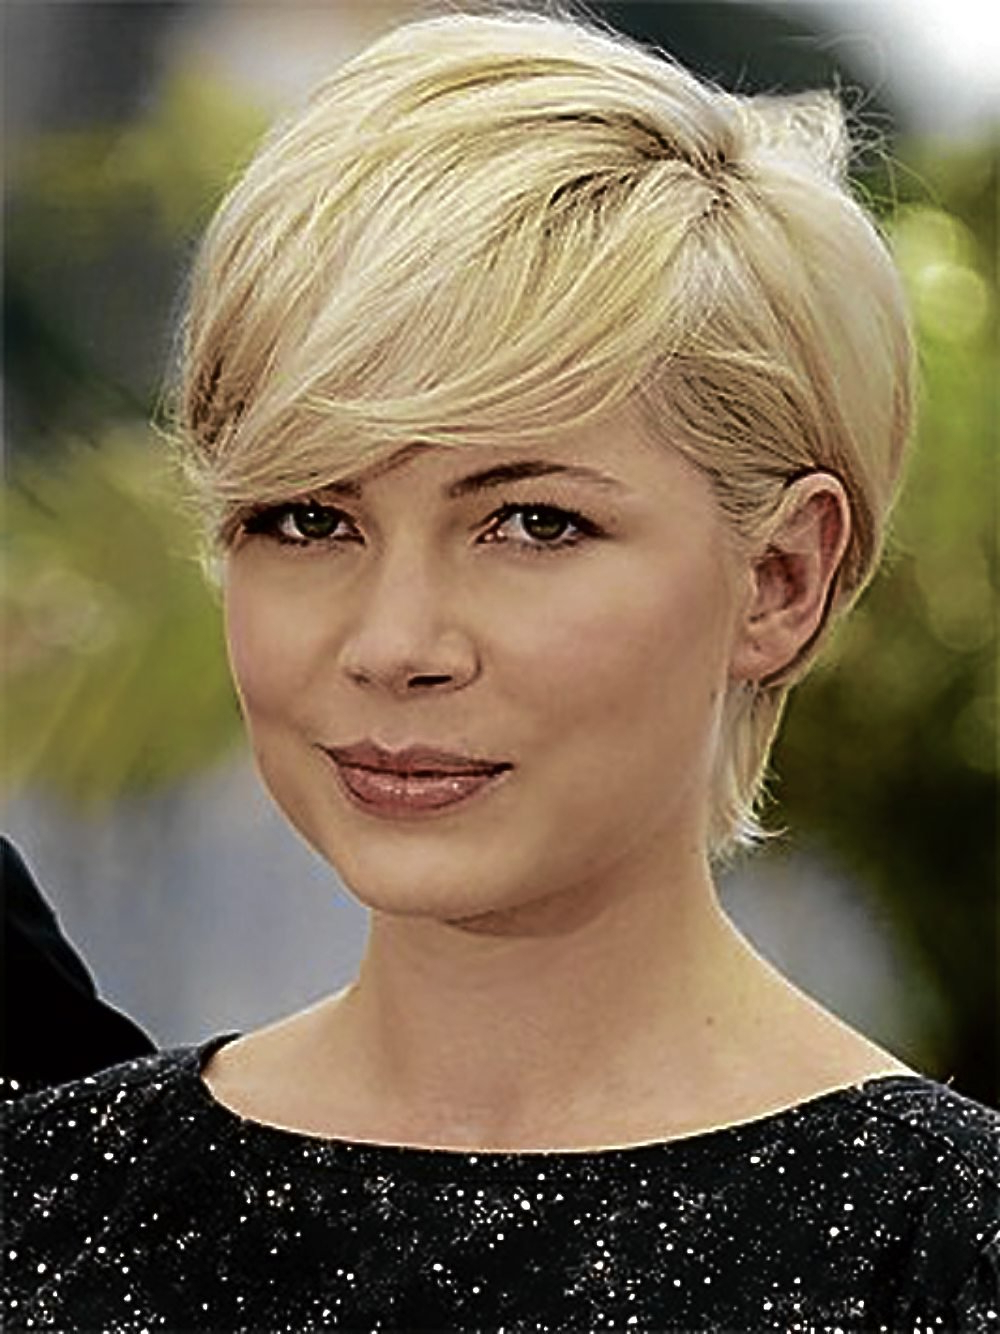 5 Things To Remember Before Getting That Pixie | Inquirer Lifestyle Within Short Haircuts For Thick Hair Long Face (View 6 of 25)